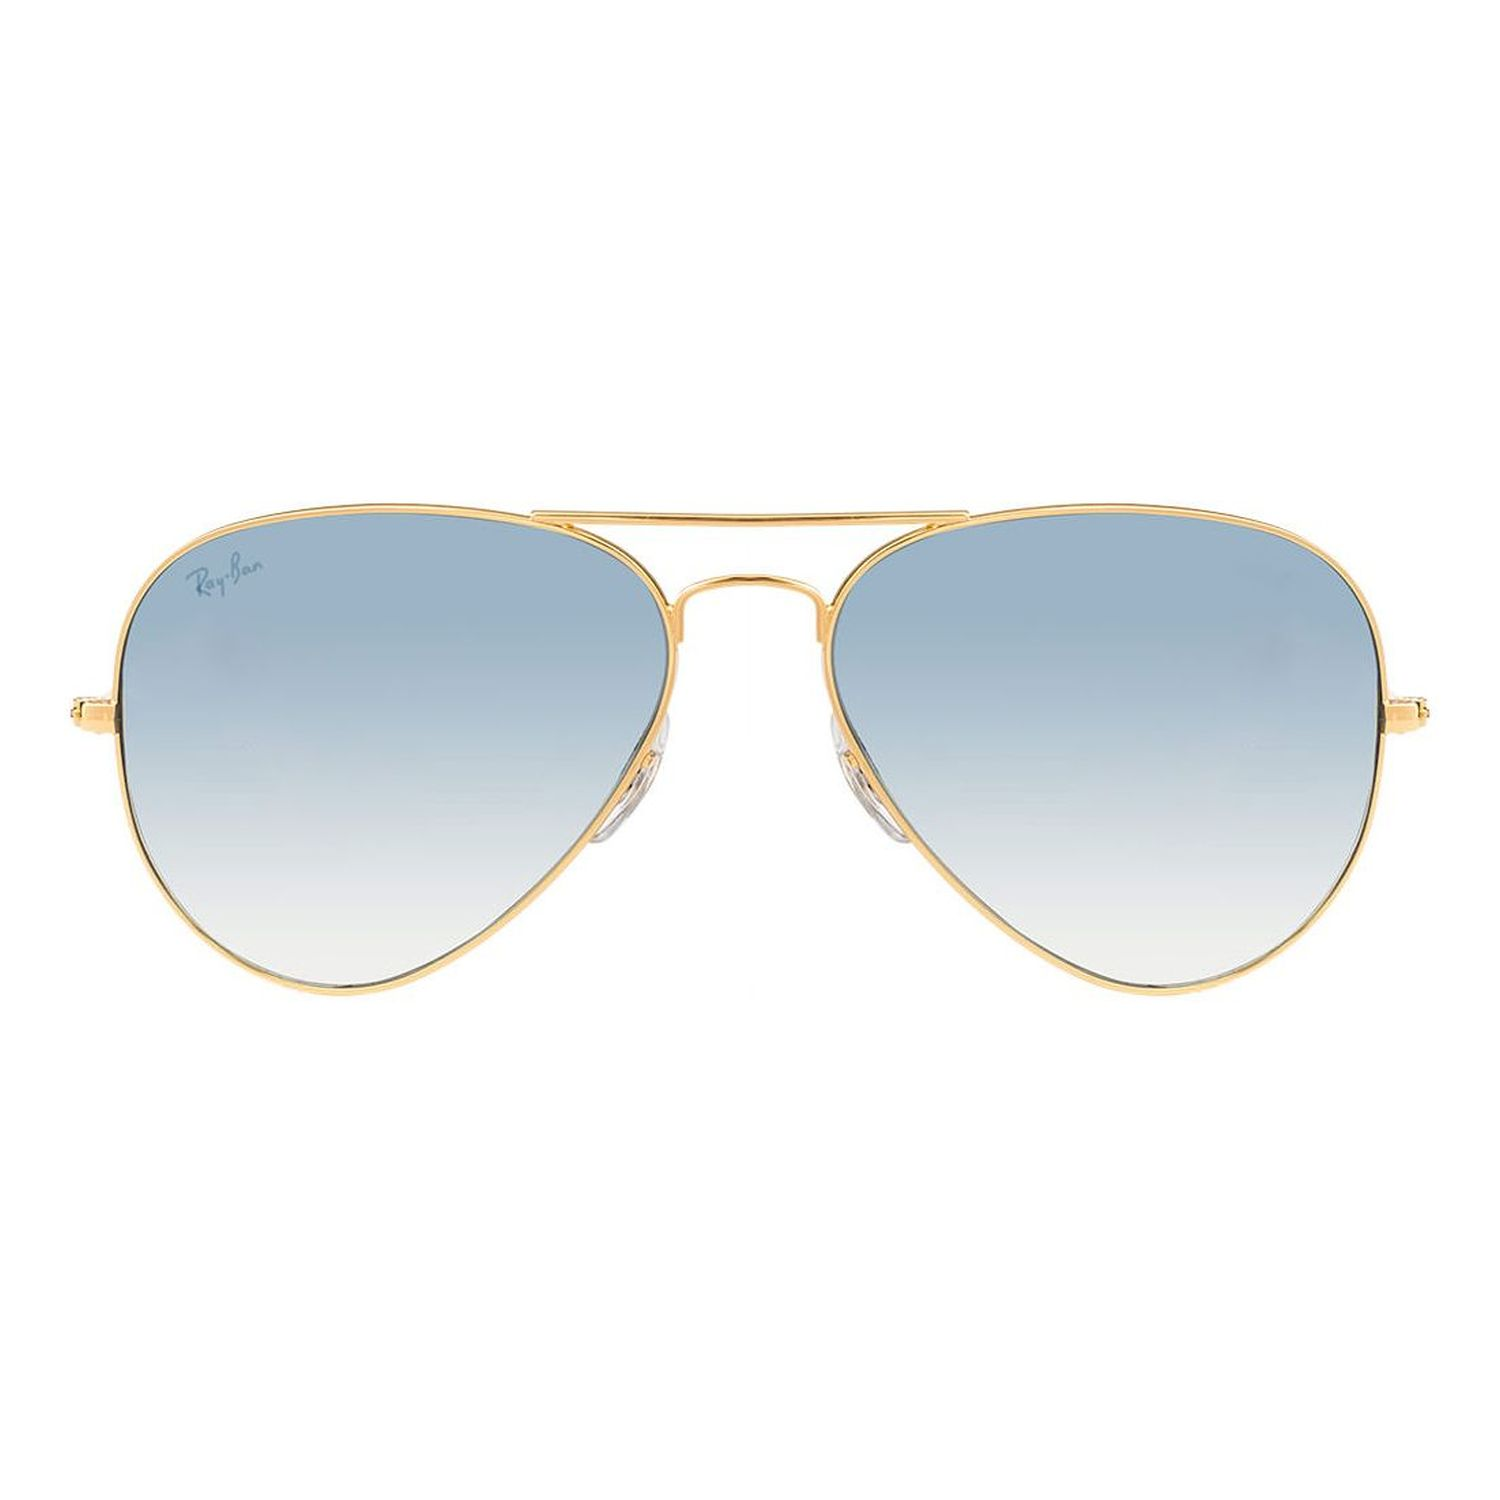 a502dd4b9f33 Ray-Ban RB3025-001-3F Aviator Sunglasses Gold Frame Light Blue ...